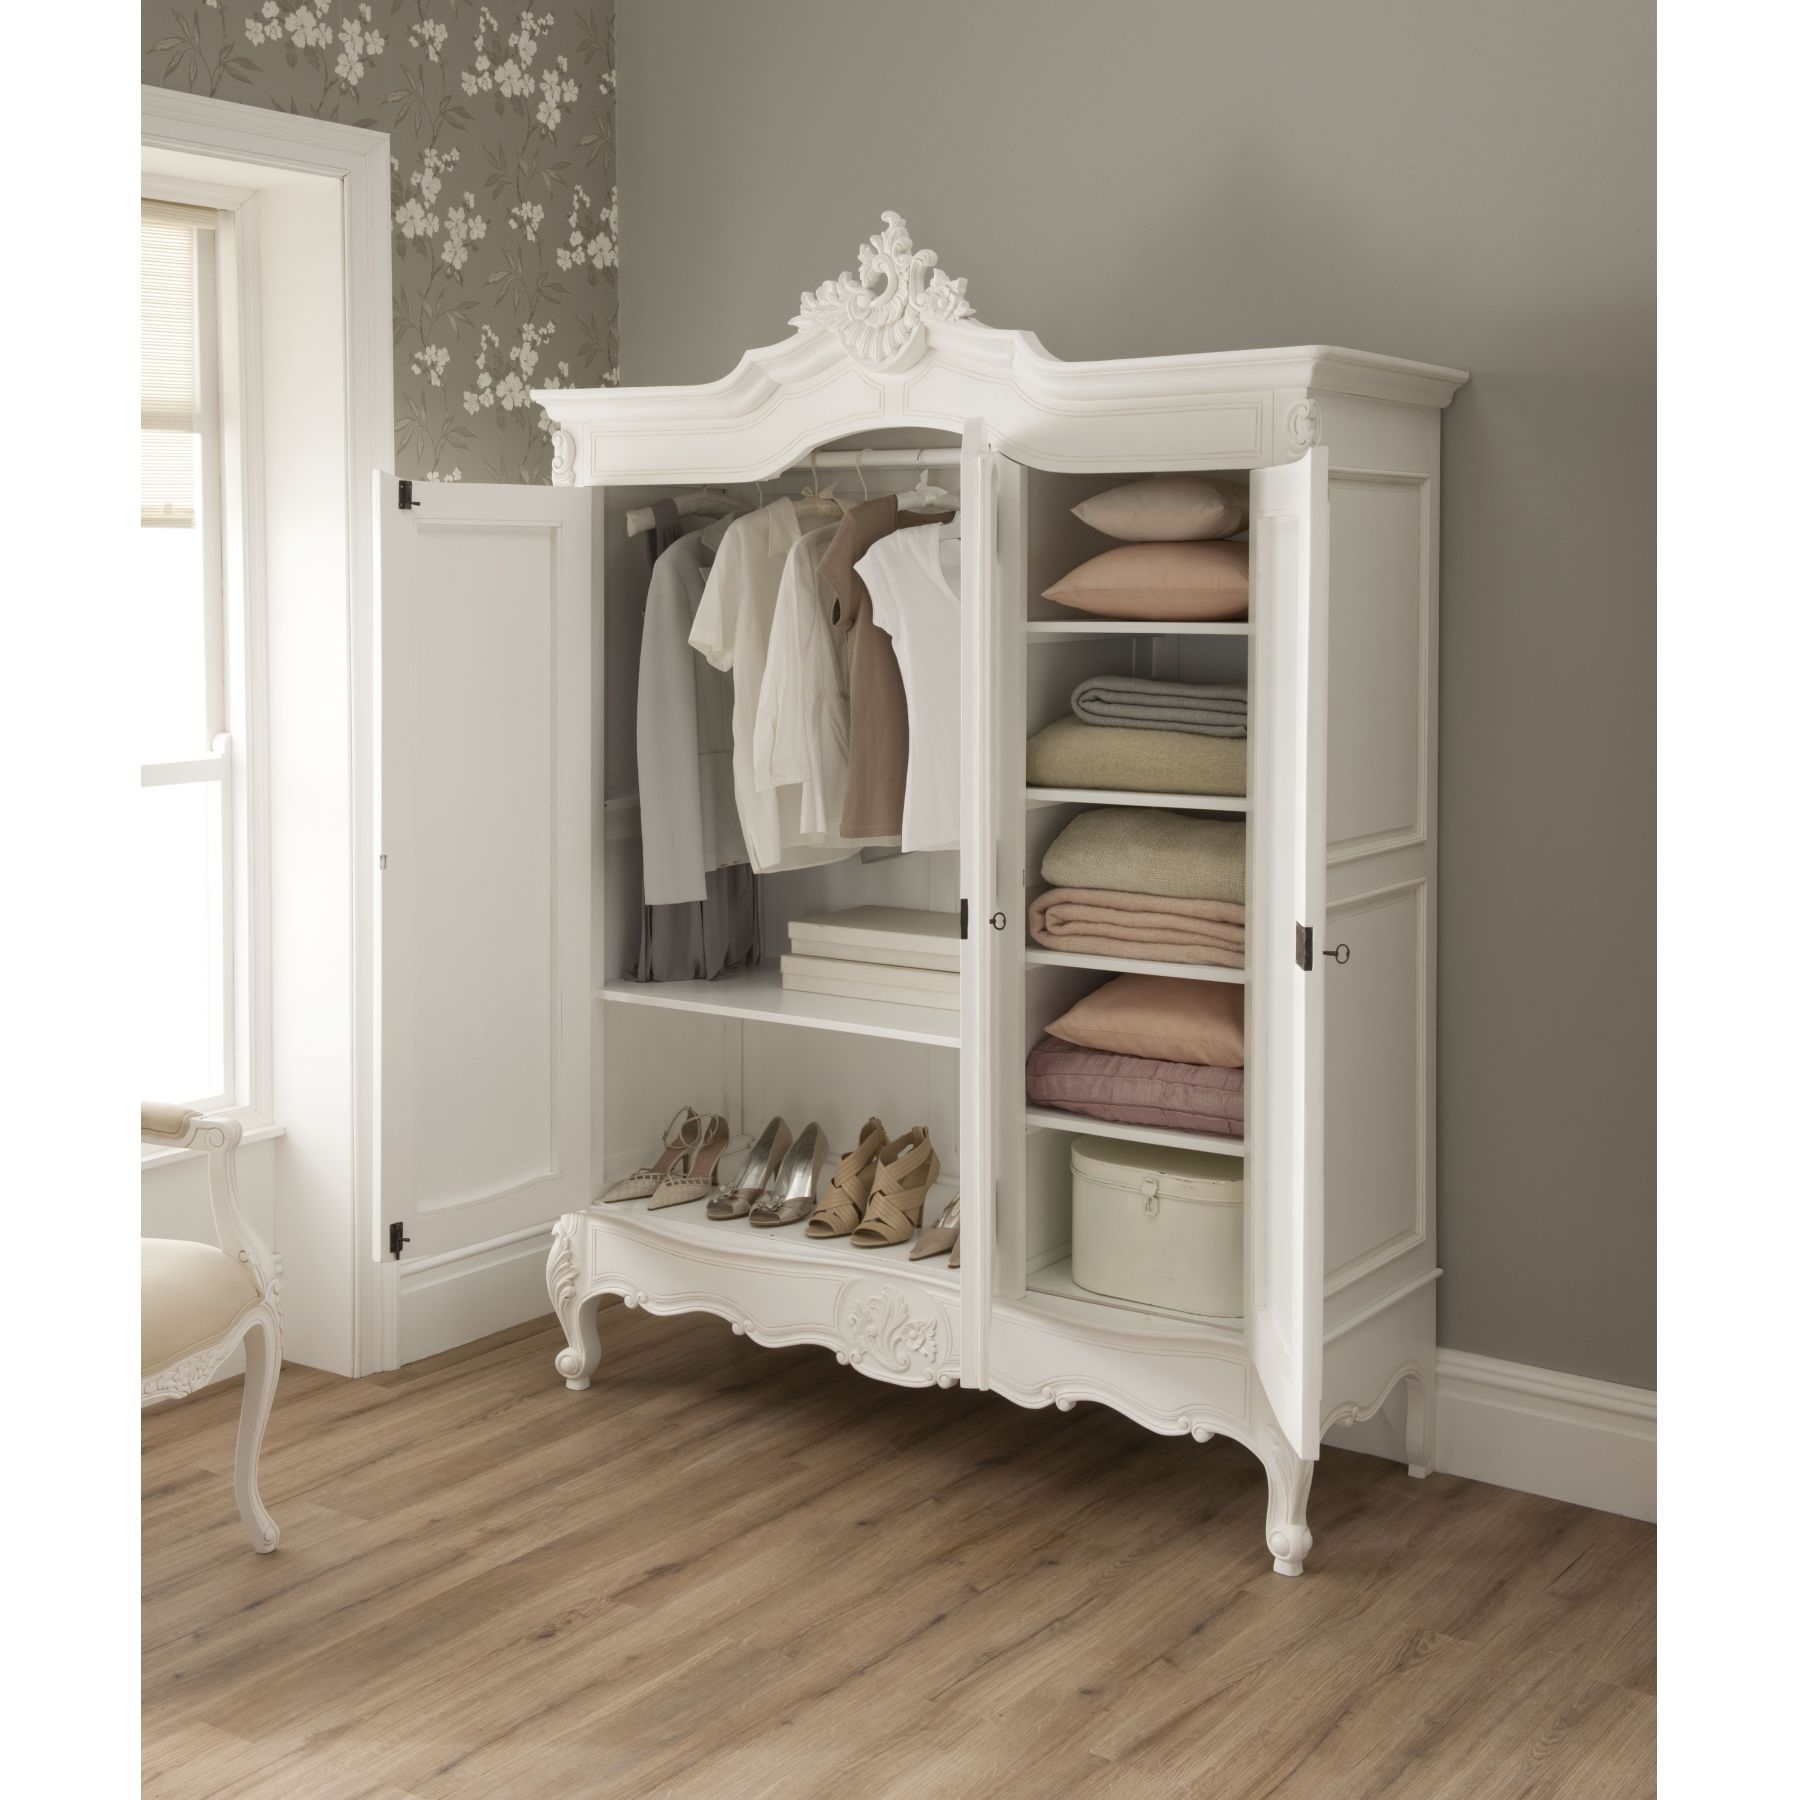 A Wardrobe Is The Perfect Addition To A Bas Room To Stylishly With Wardrobe For Baby Clothes (Image 2 of 25)